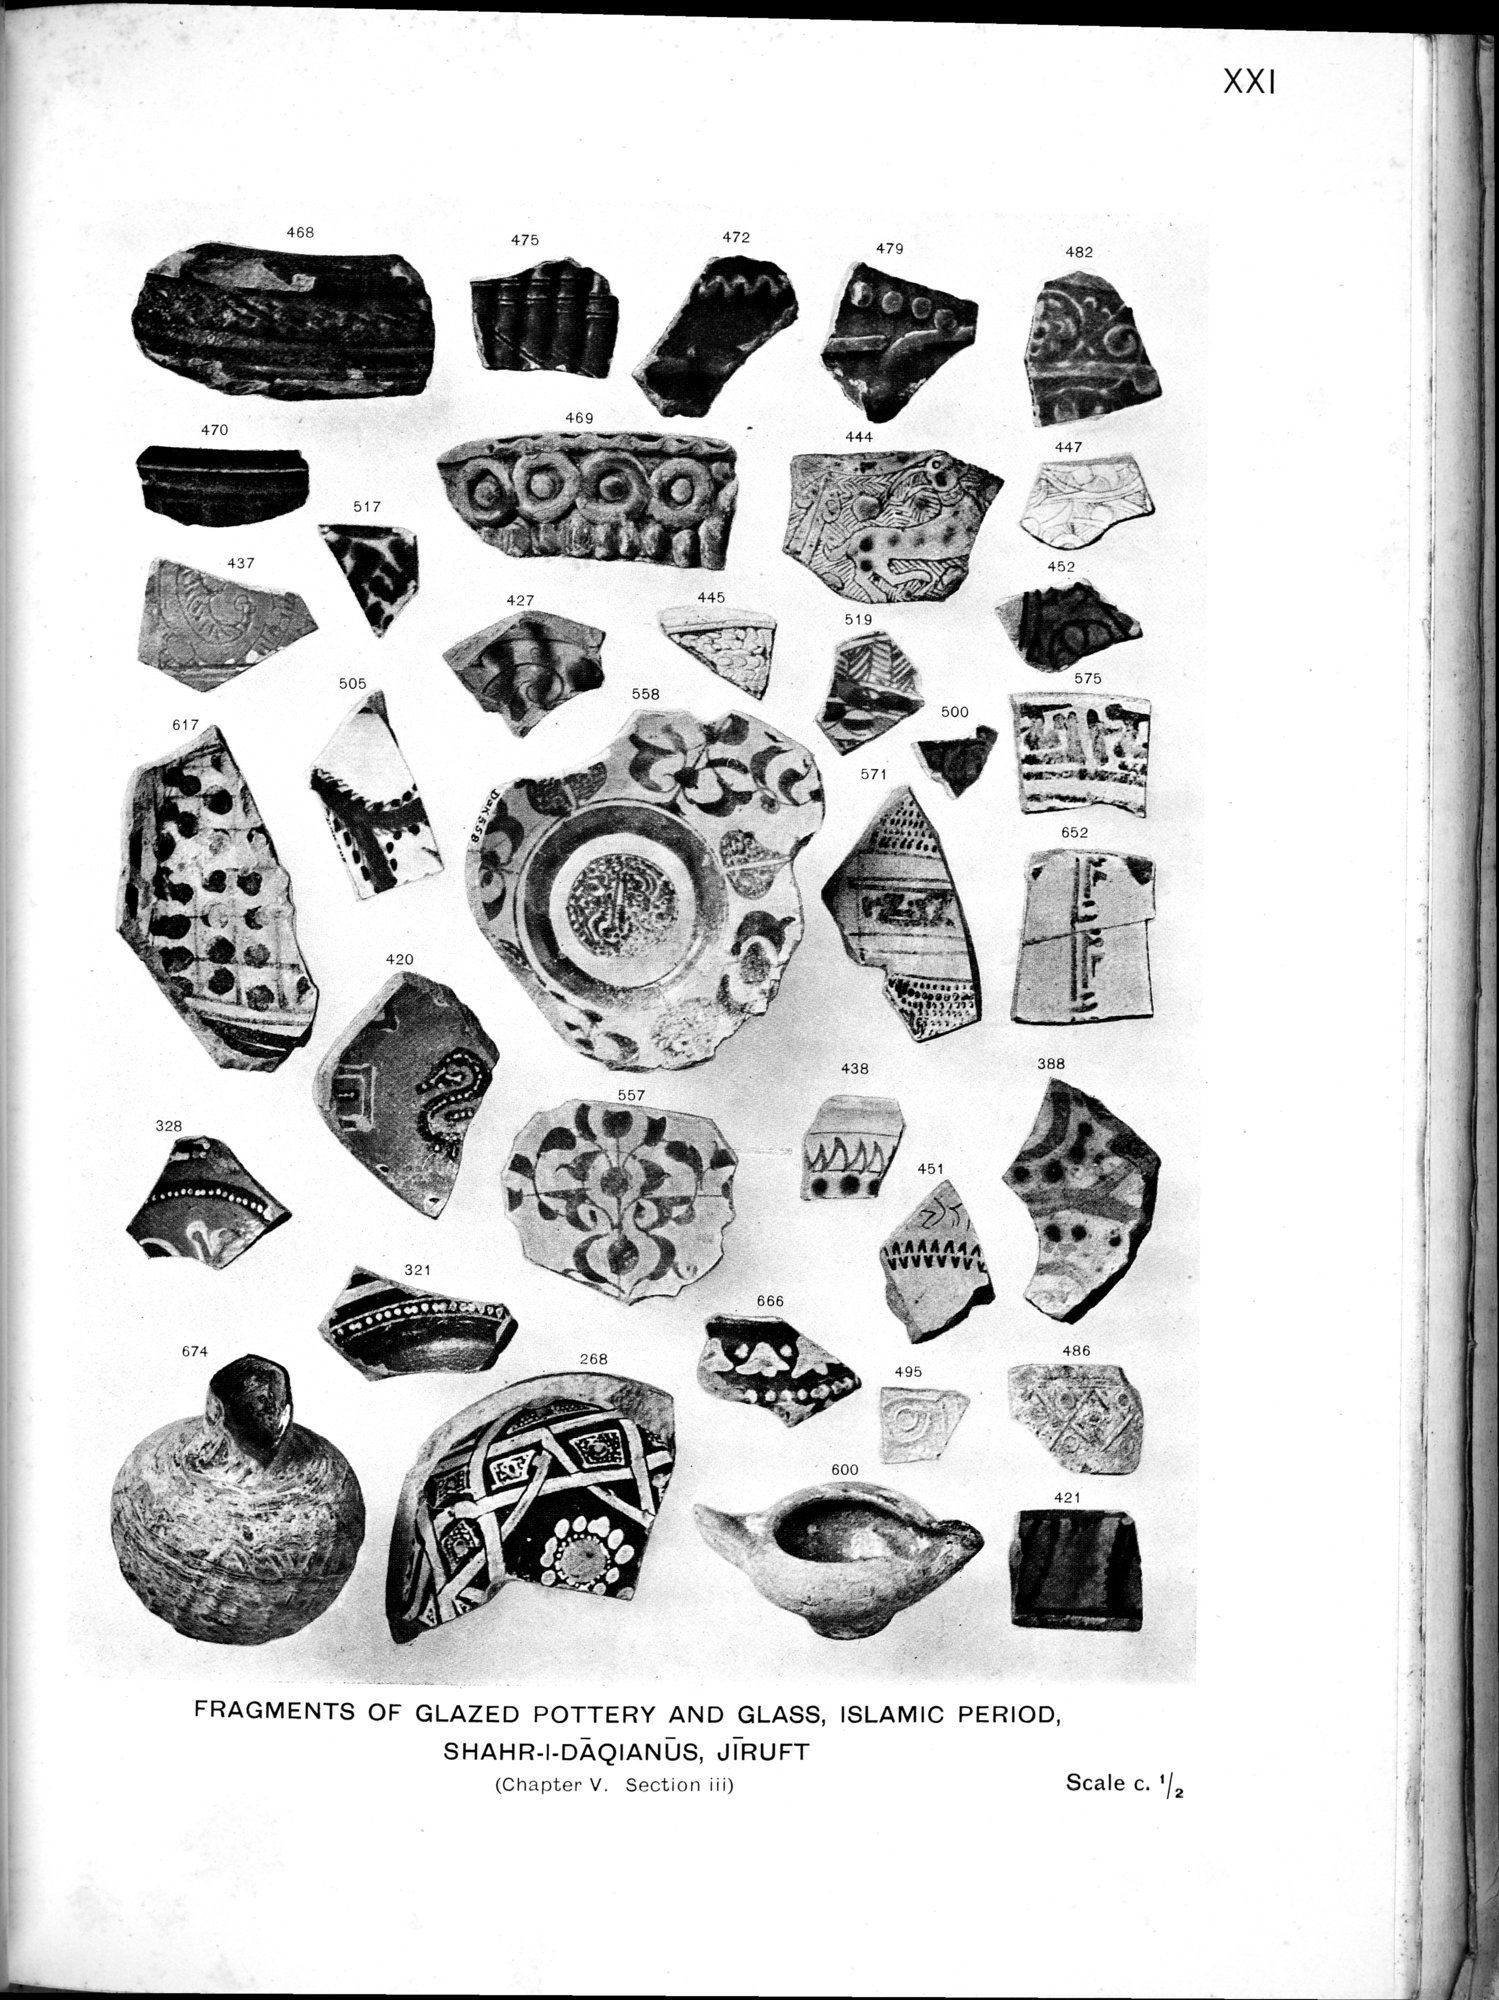 Archaeological Reconnaissances in North-Western India and South-Eastern Īrān : vol.1 / Page 393 (Grayscale High Resolution Image)